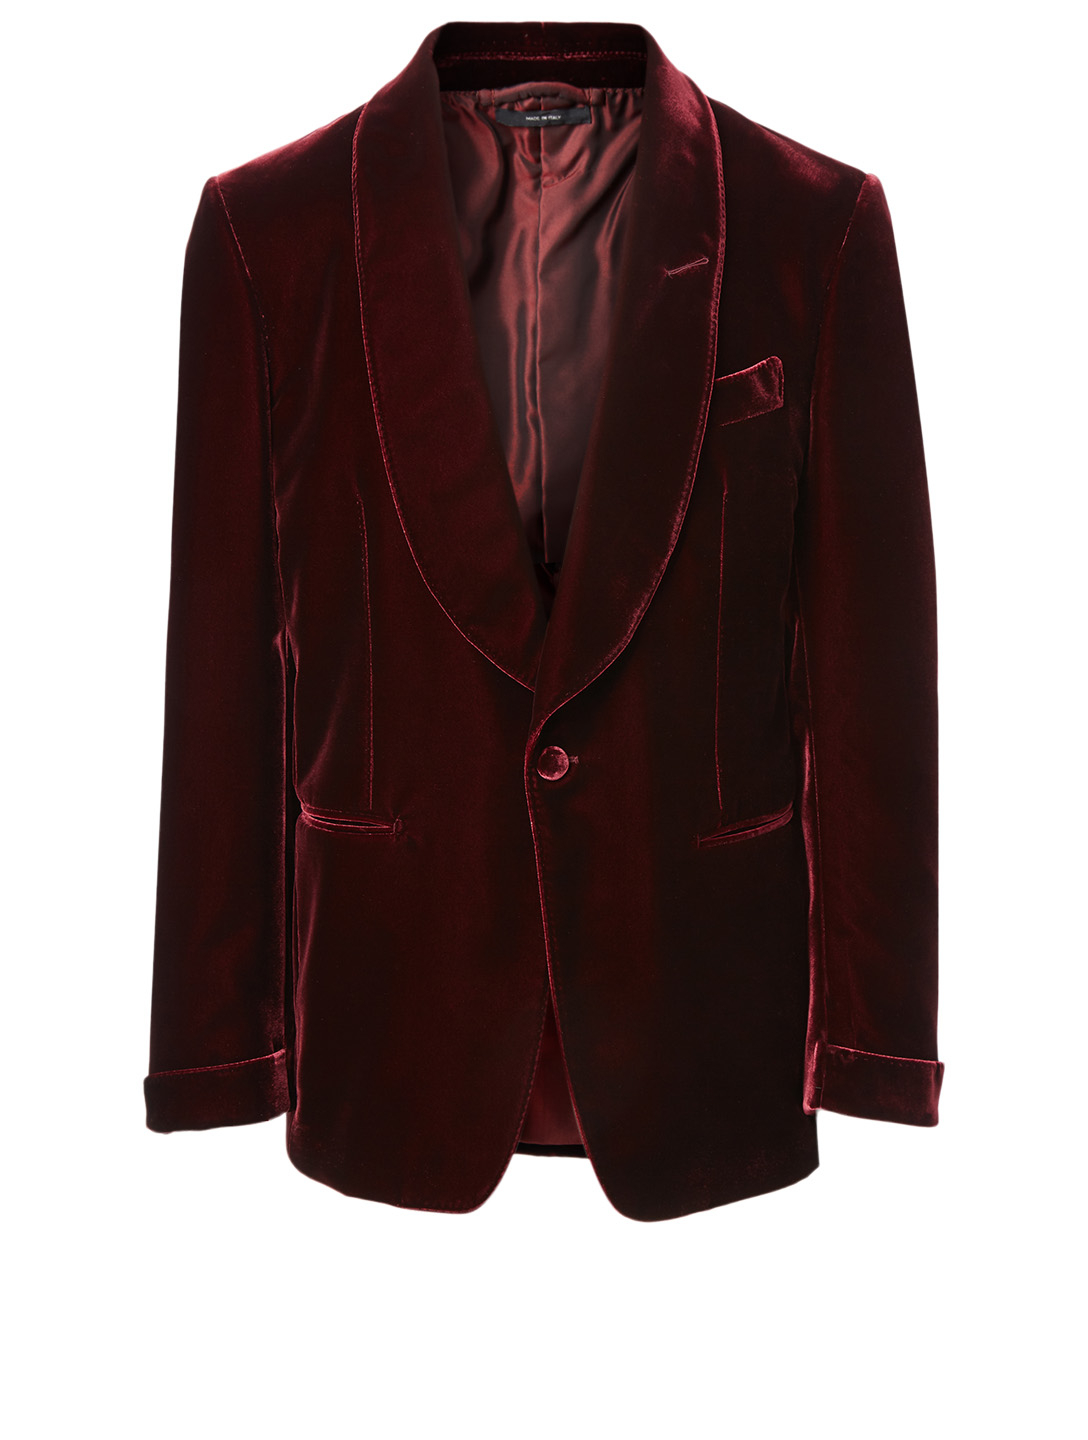 TOM FORD Shelton Velvet Evening Jacket Men's Red